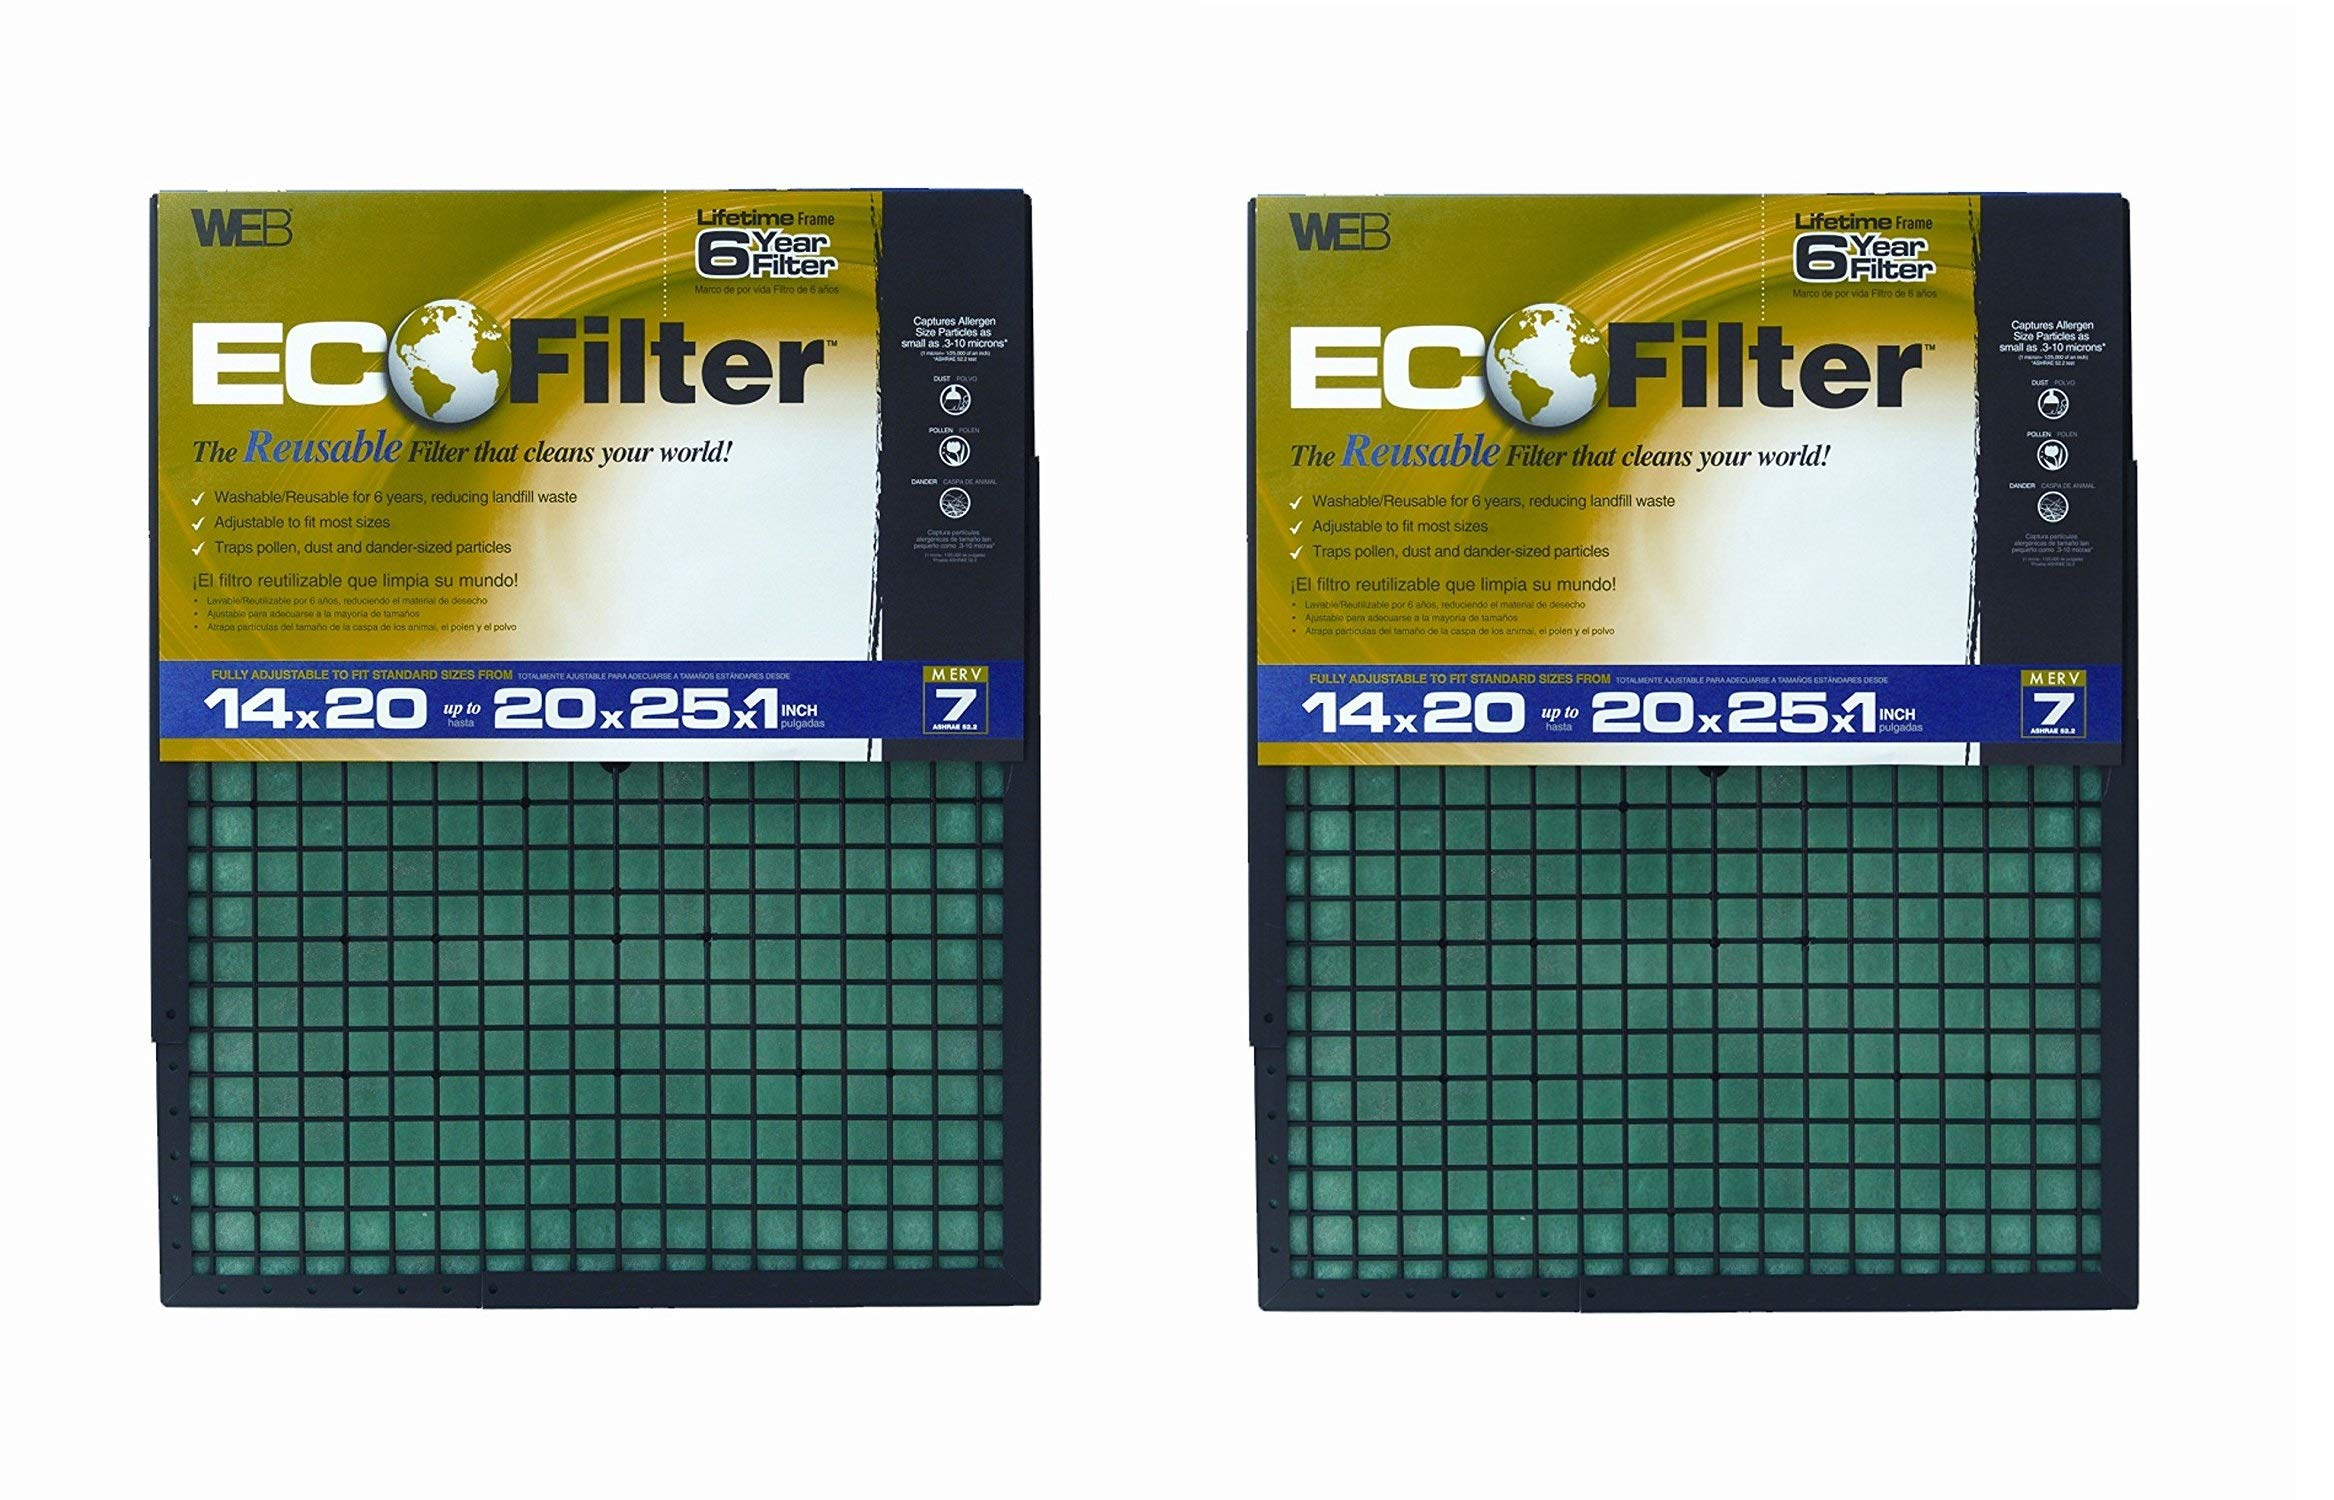 WEB Eco Filter Adjustable, 6 Year (Pack of 2)